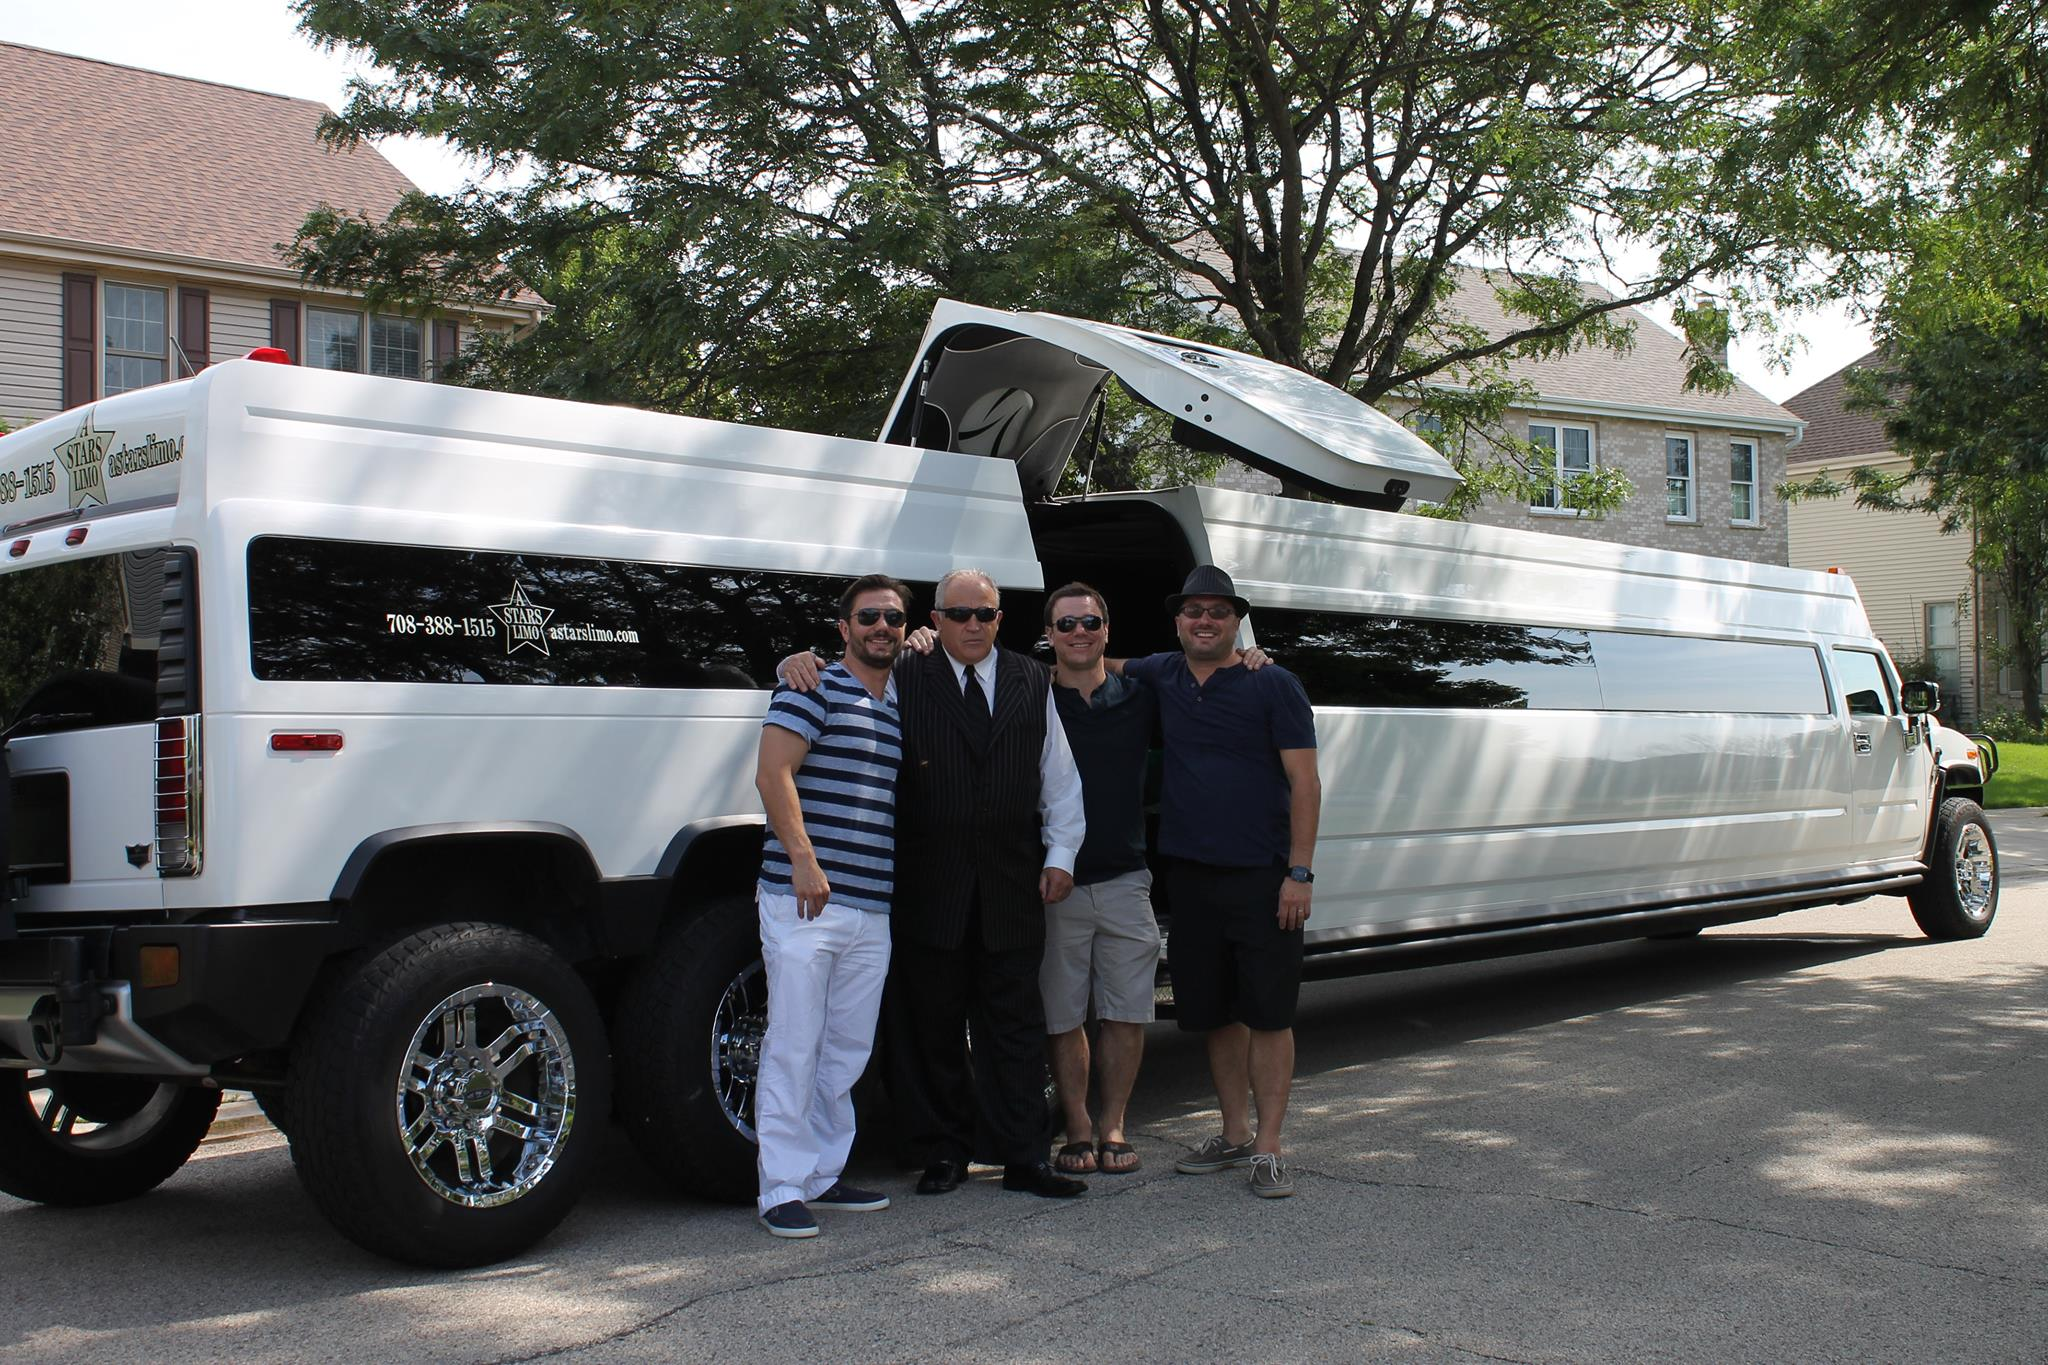 A Stars Limo   Hummer Rides in Palos Heights   Hummer Rides Palos Heights 7.jpg